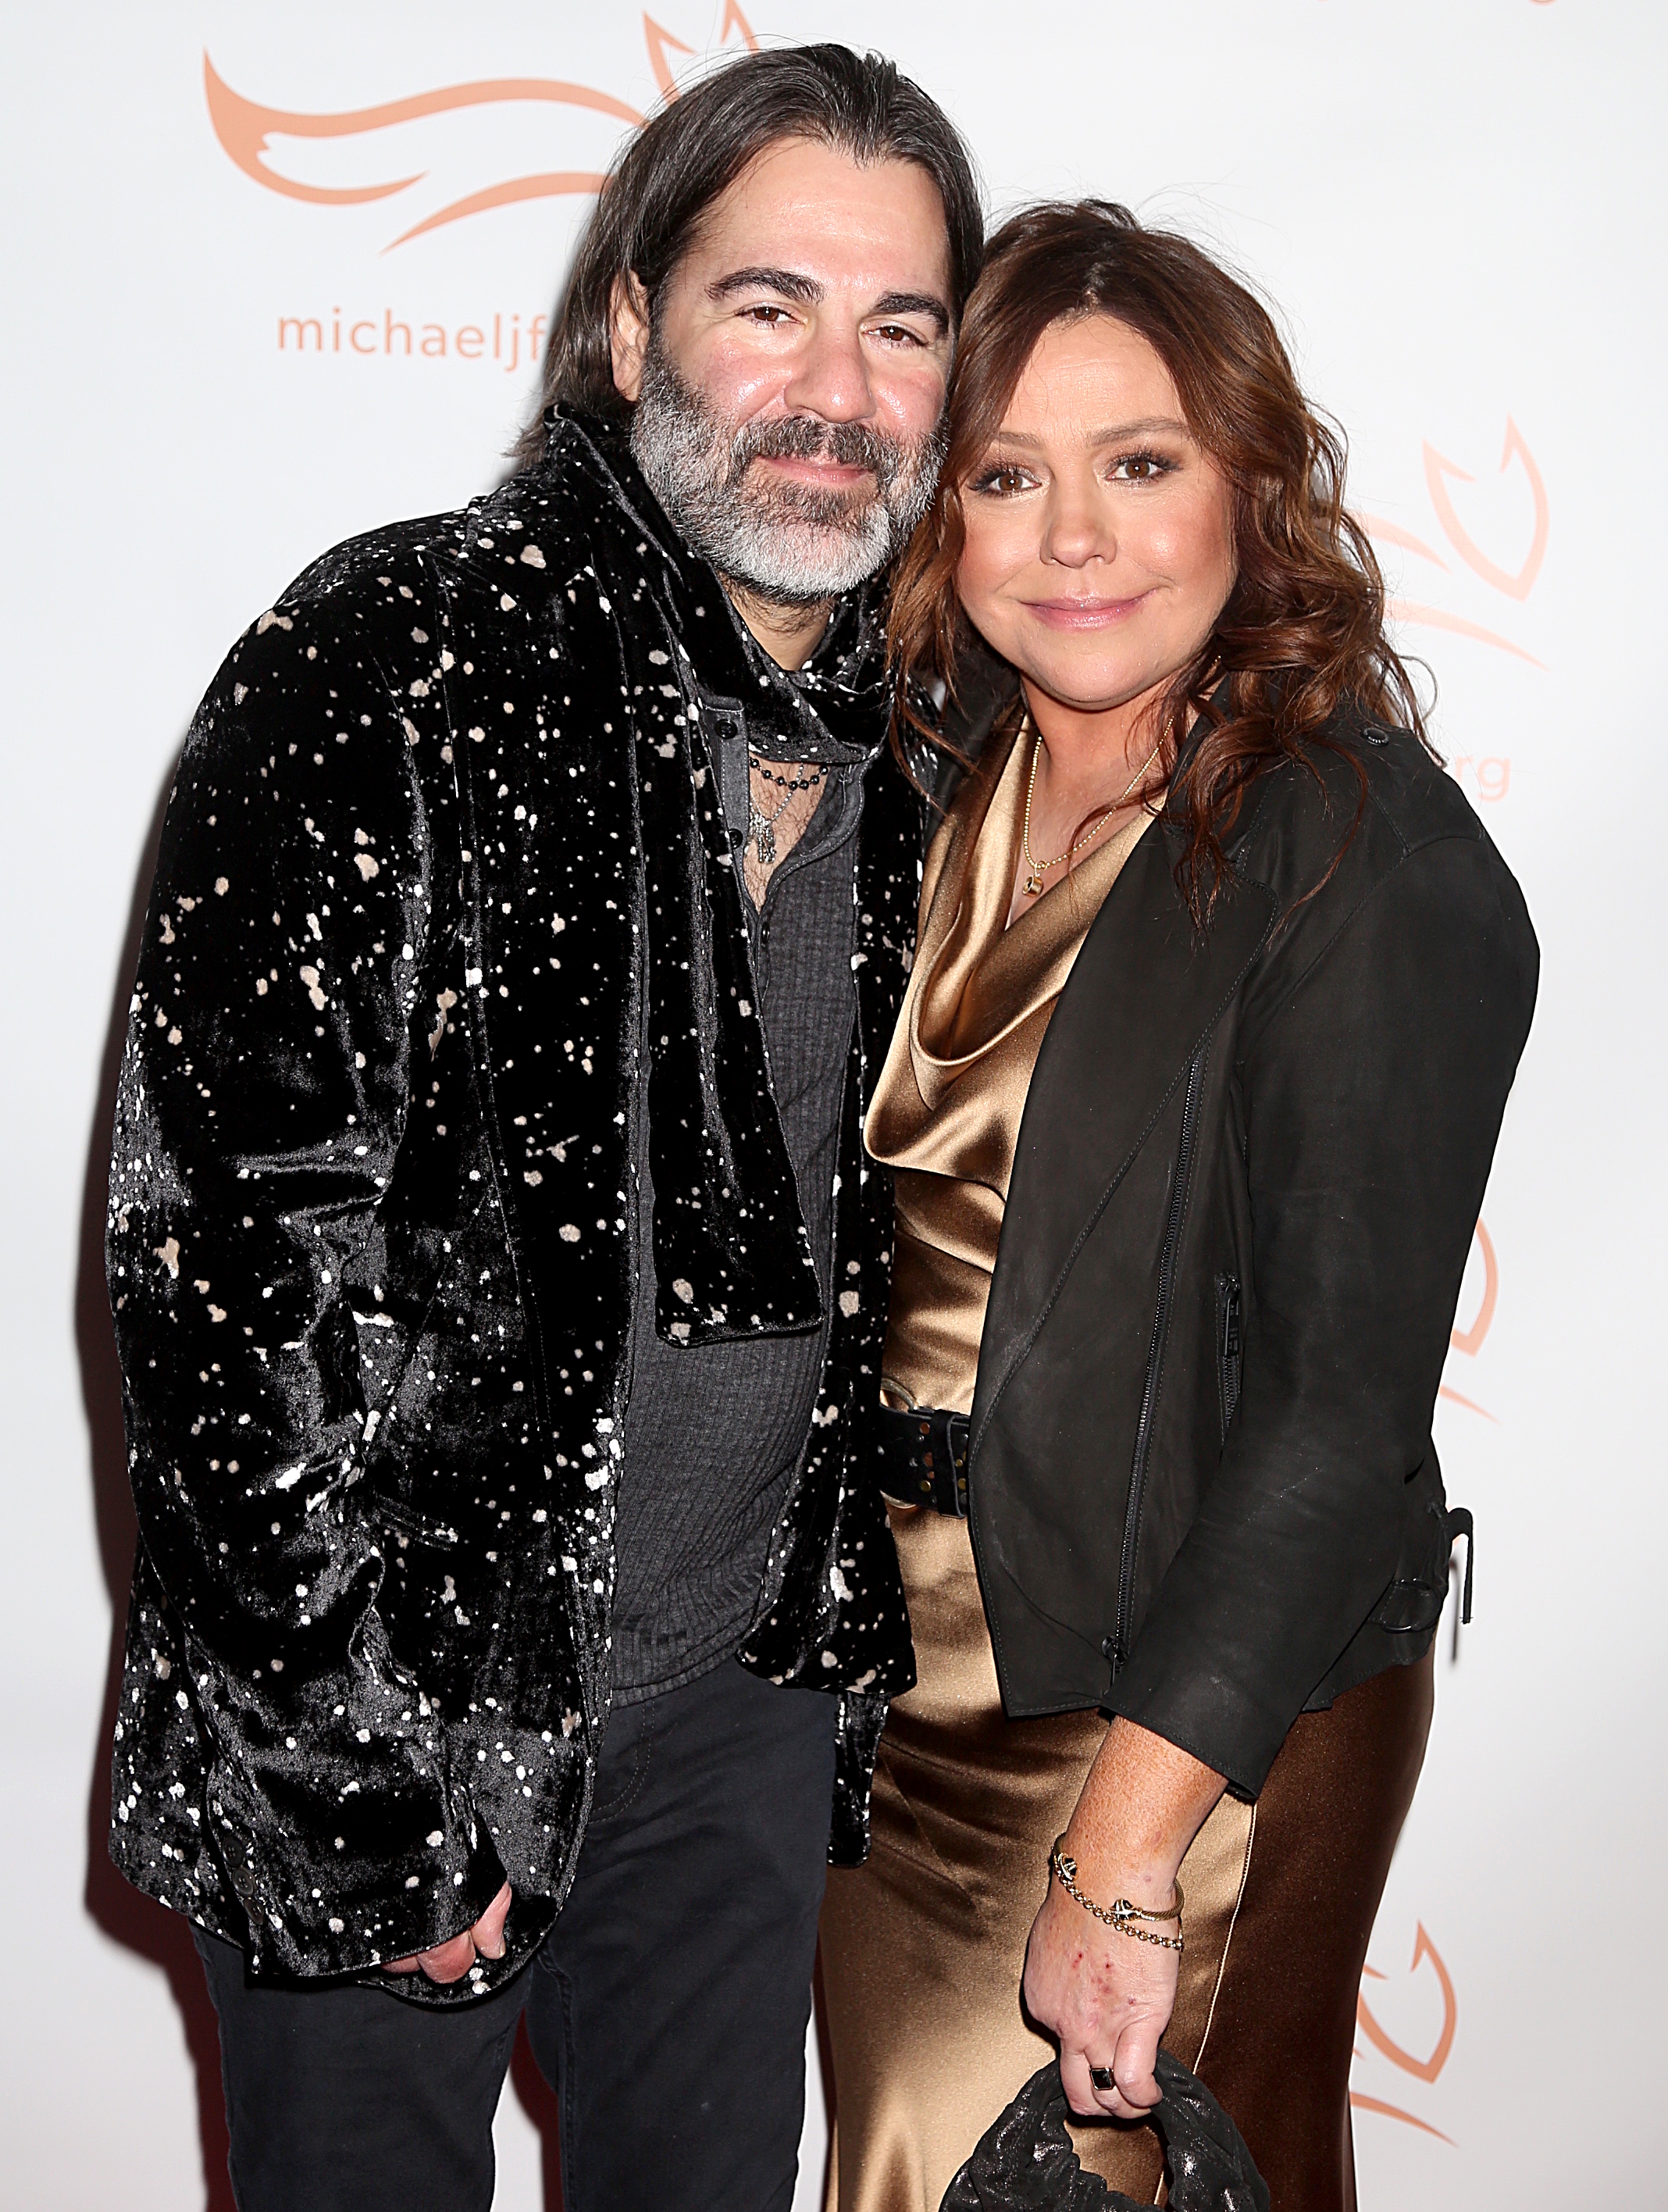 Rachael Ray Said She Had Deeper Appreciation For Husband Before Fire